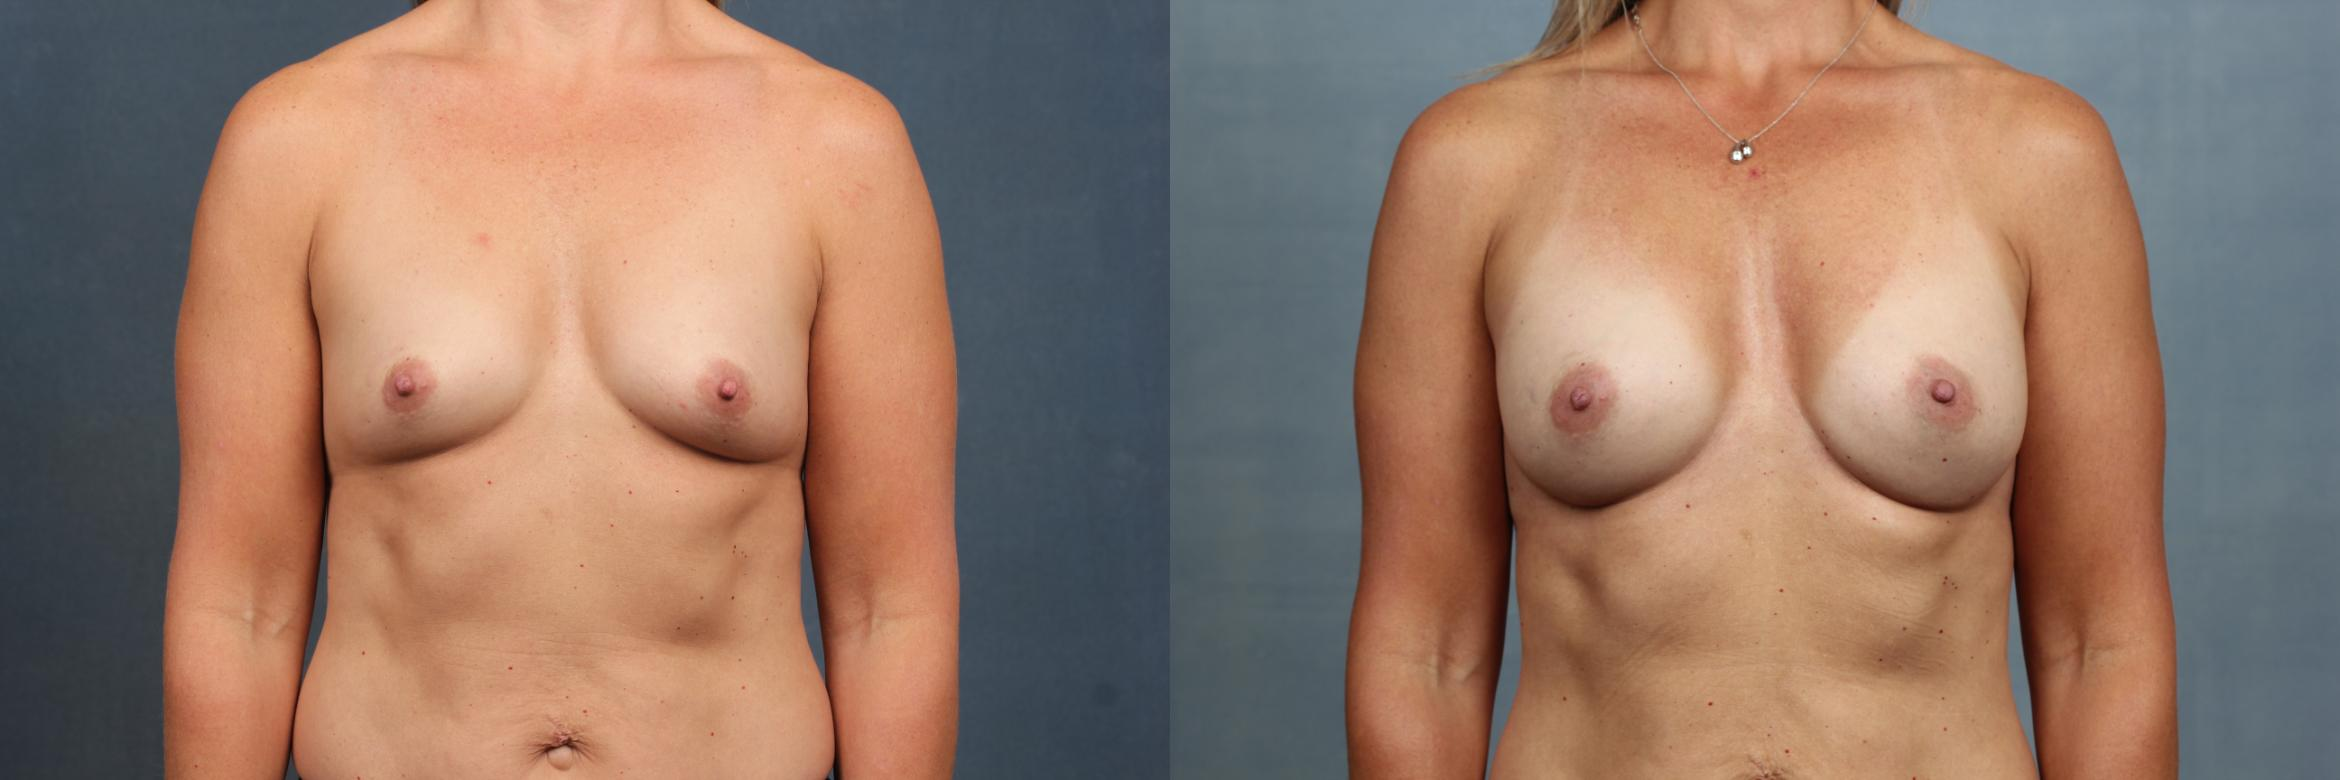 Enlargement - Silicone Case 589 Before & After View #1 | Louisville & Lexington, KY | CaloAesthetics® Plastic Surgery Center